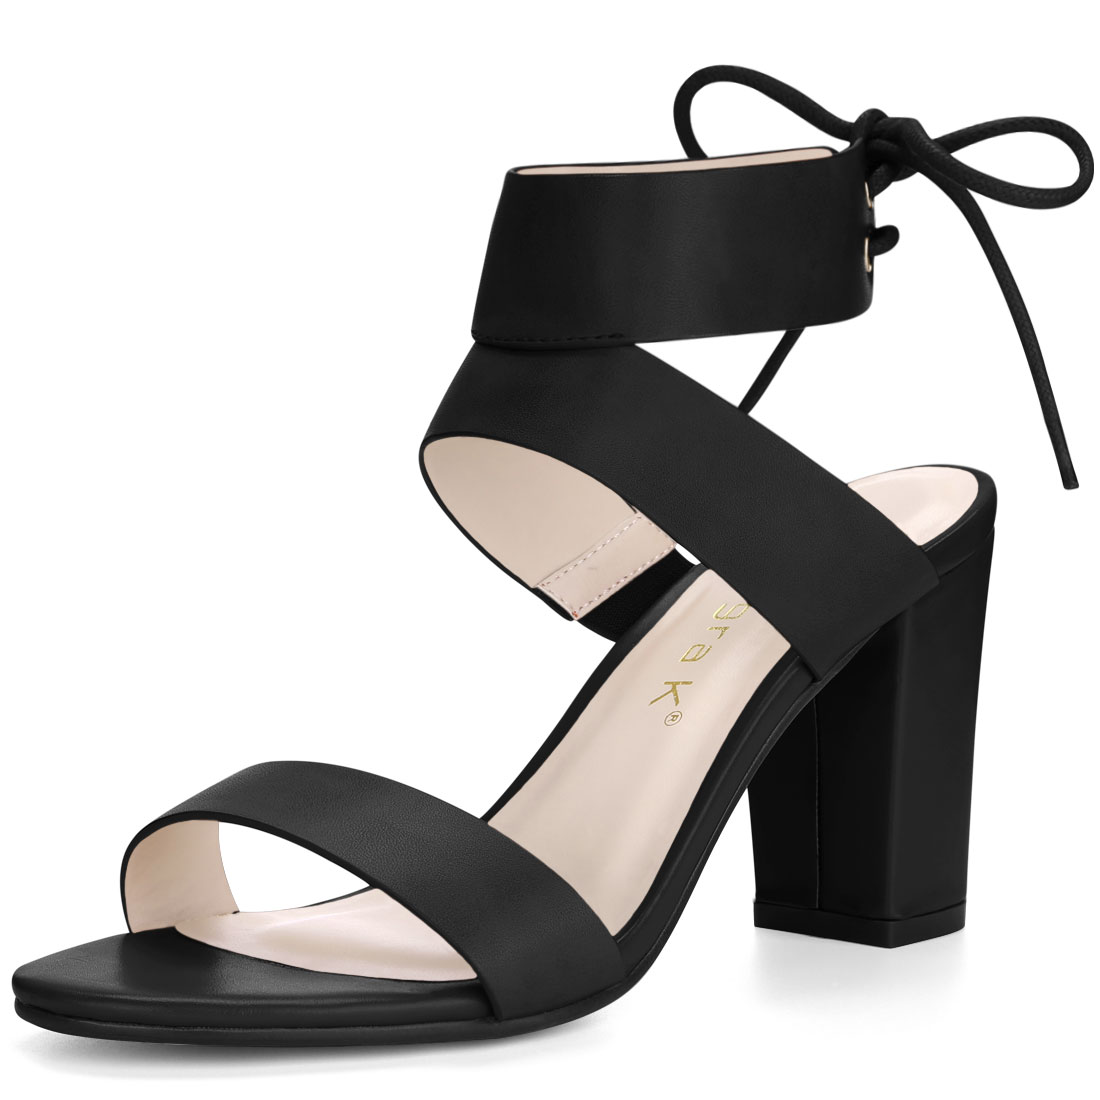 Casual Shoes With An Elevated Heel And Open Back